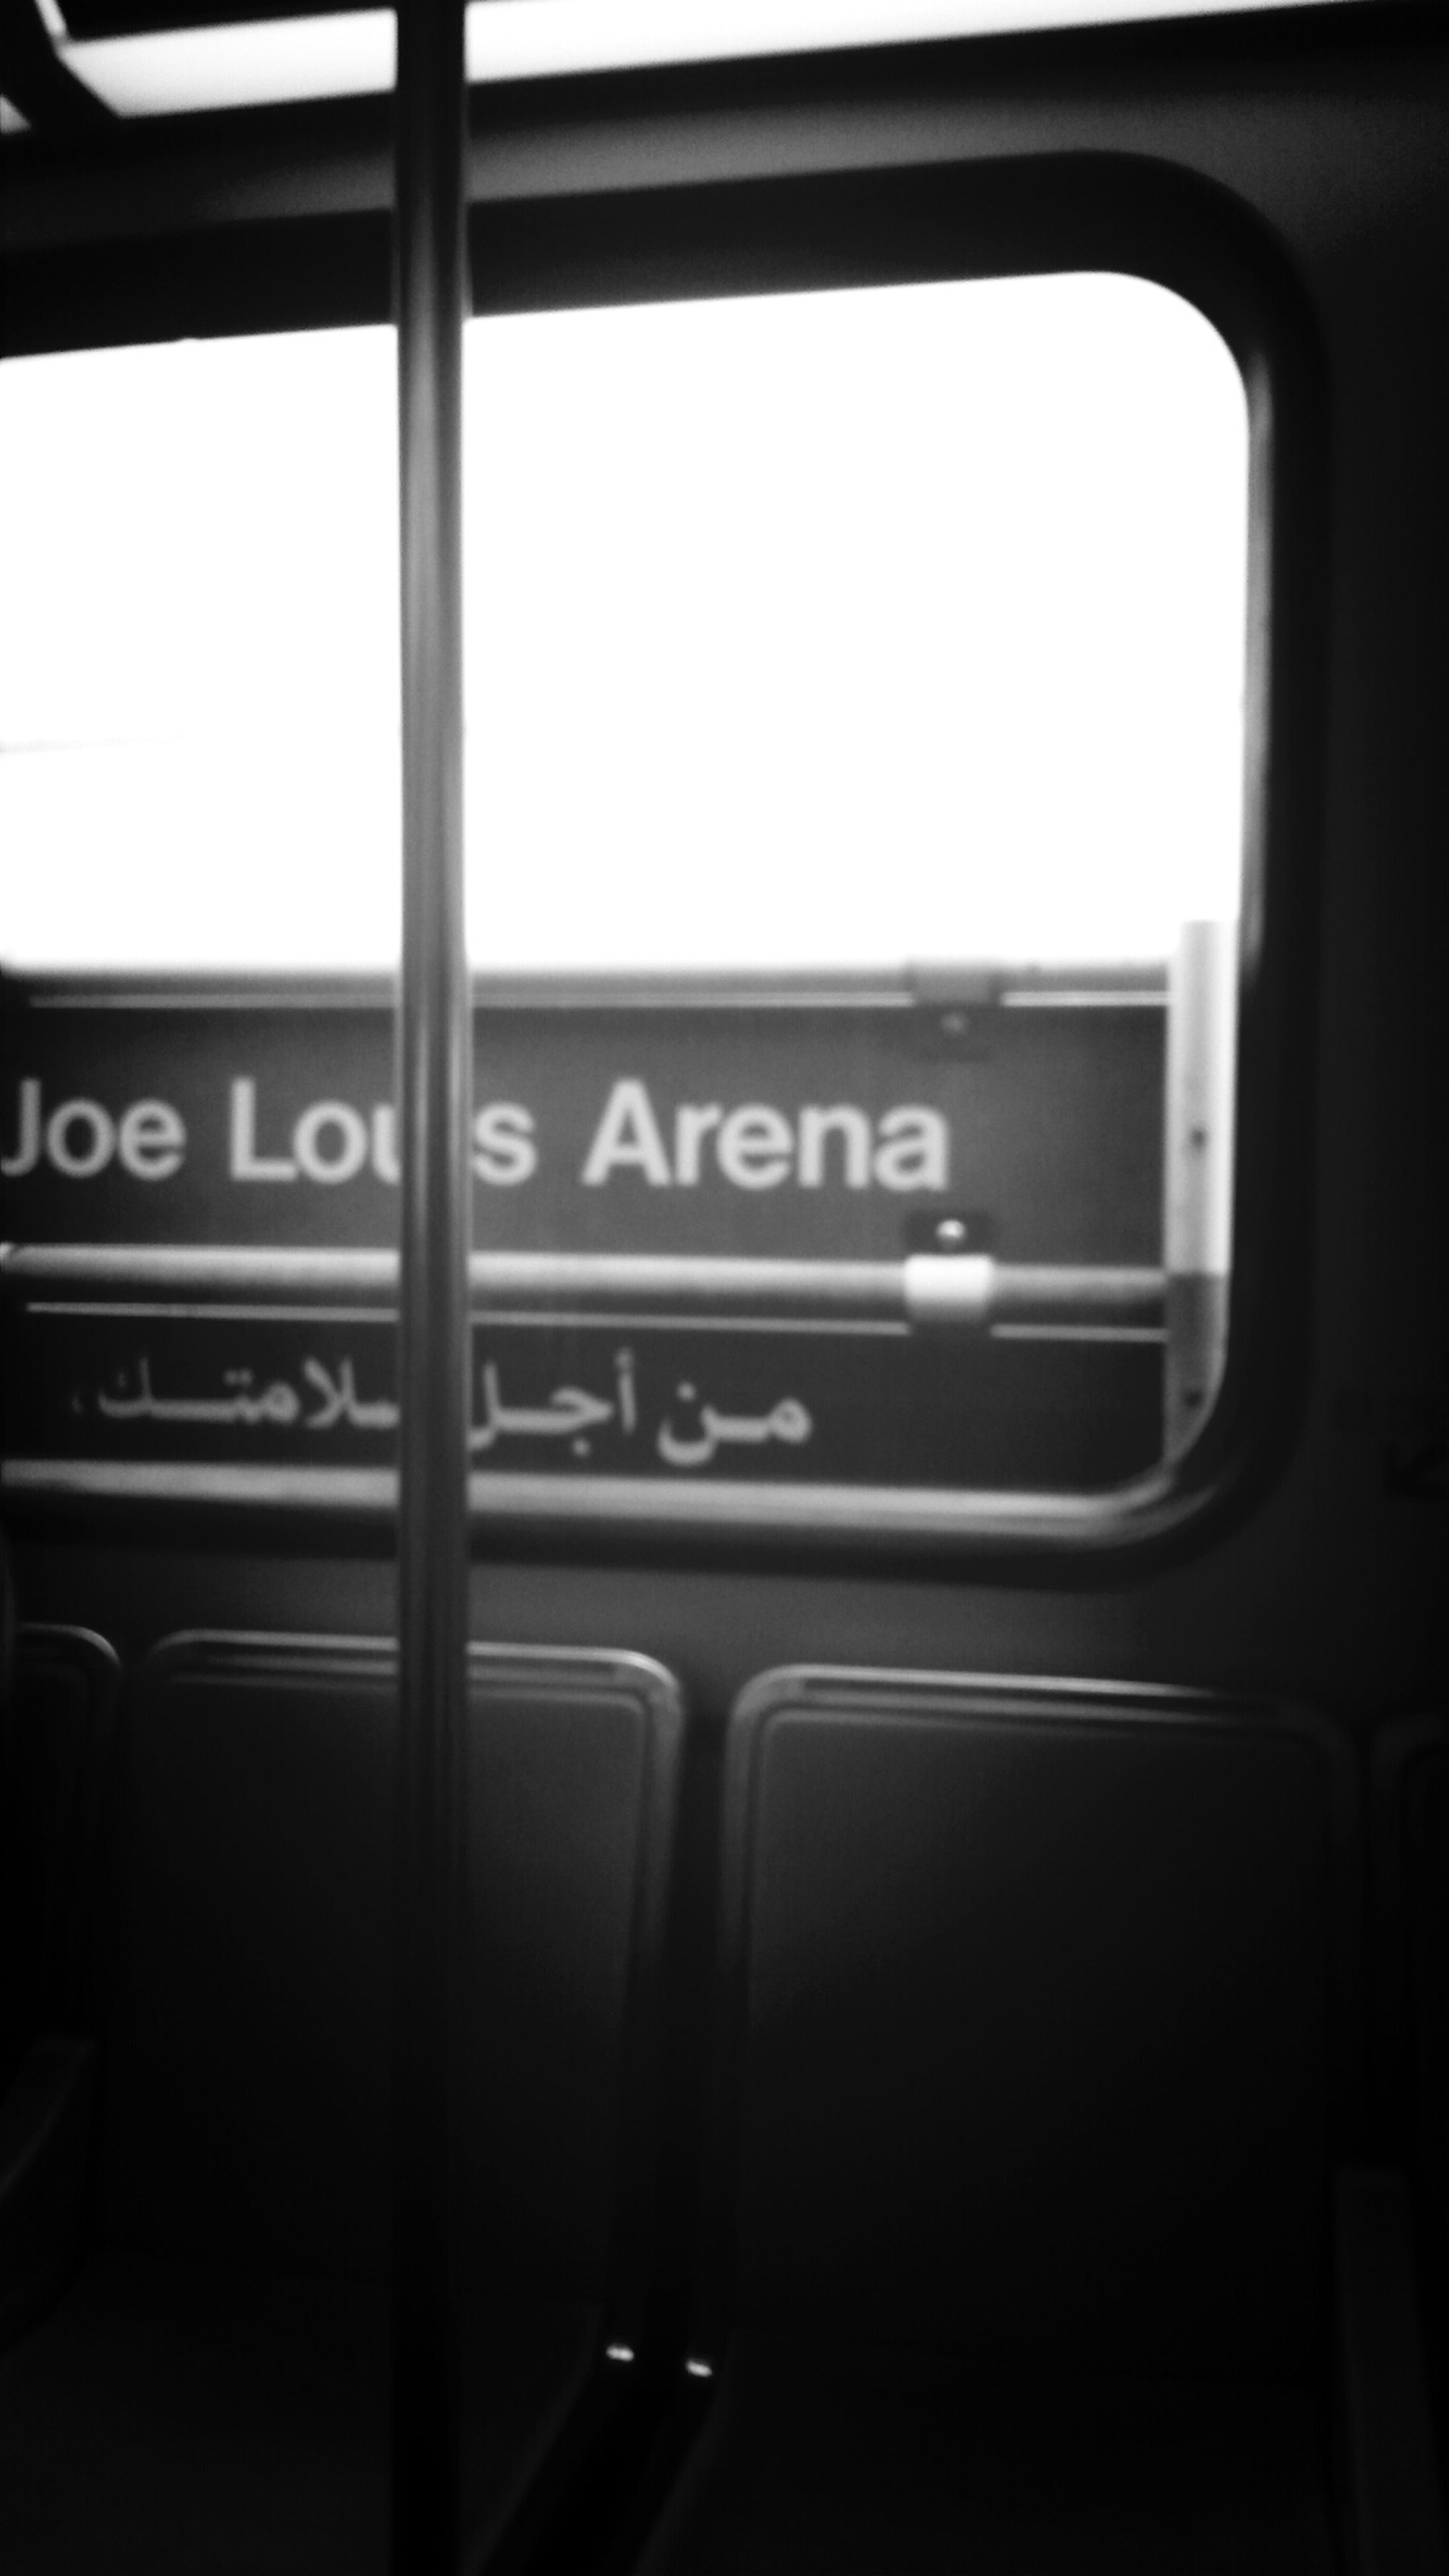 indoors, text, communication, transportation, vehicle interior, western script, window, transparent, glass - material, mode of transport, public transportation, travel, information sign, train - vehicle, car, no people, close-up, rail transportation, day, land vehicle